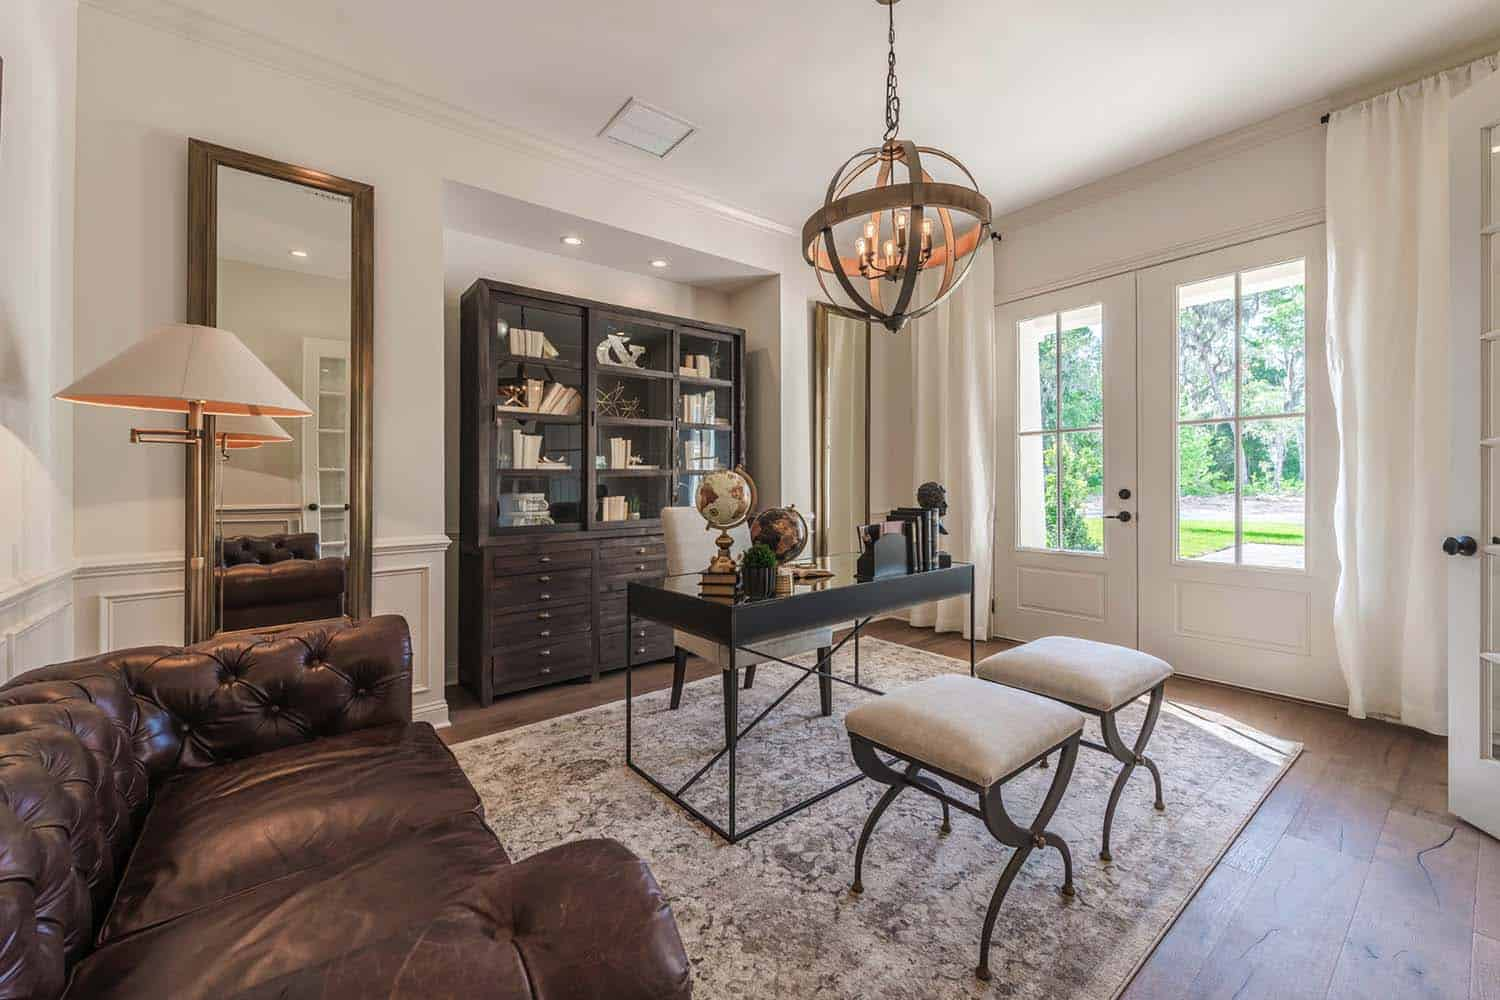 Interior design home cottage - Transitional Style Model Home Cottage Home Company 08